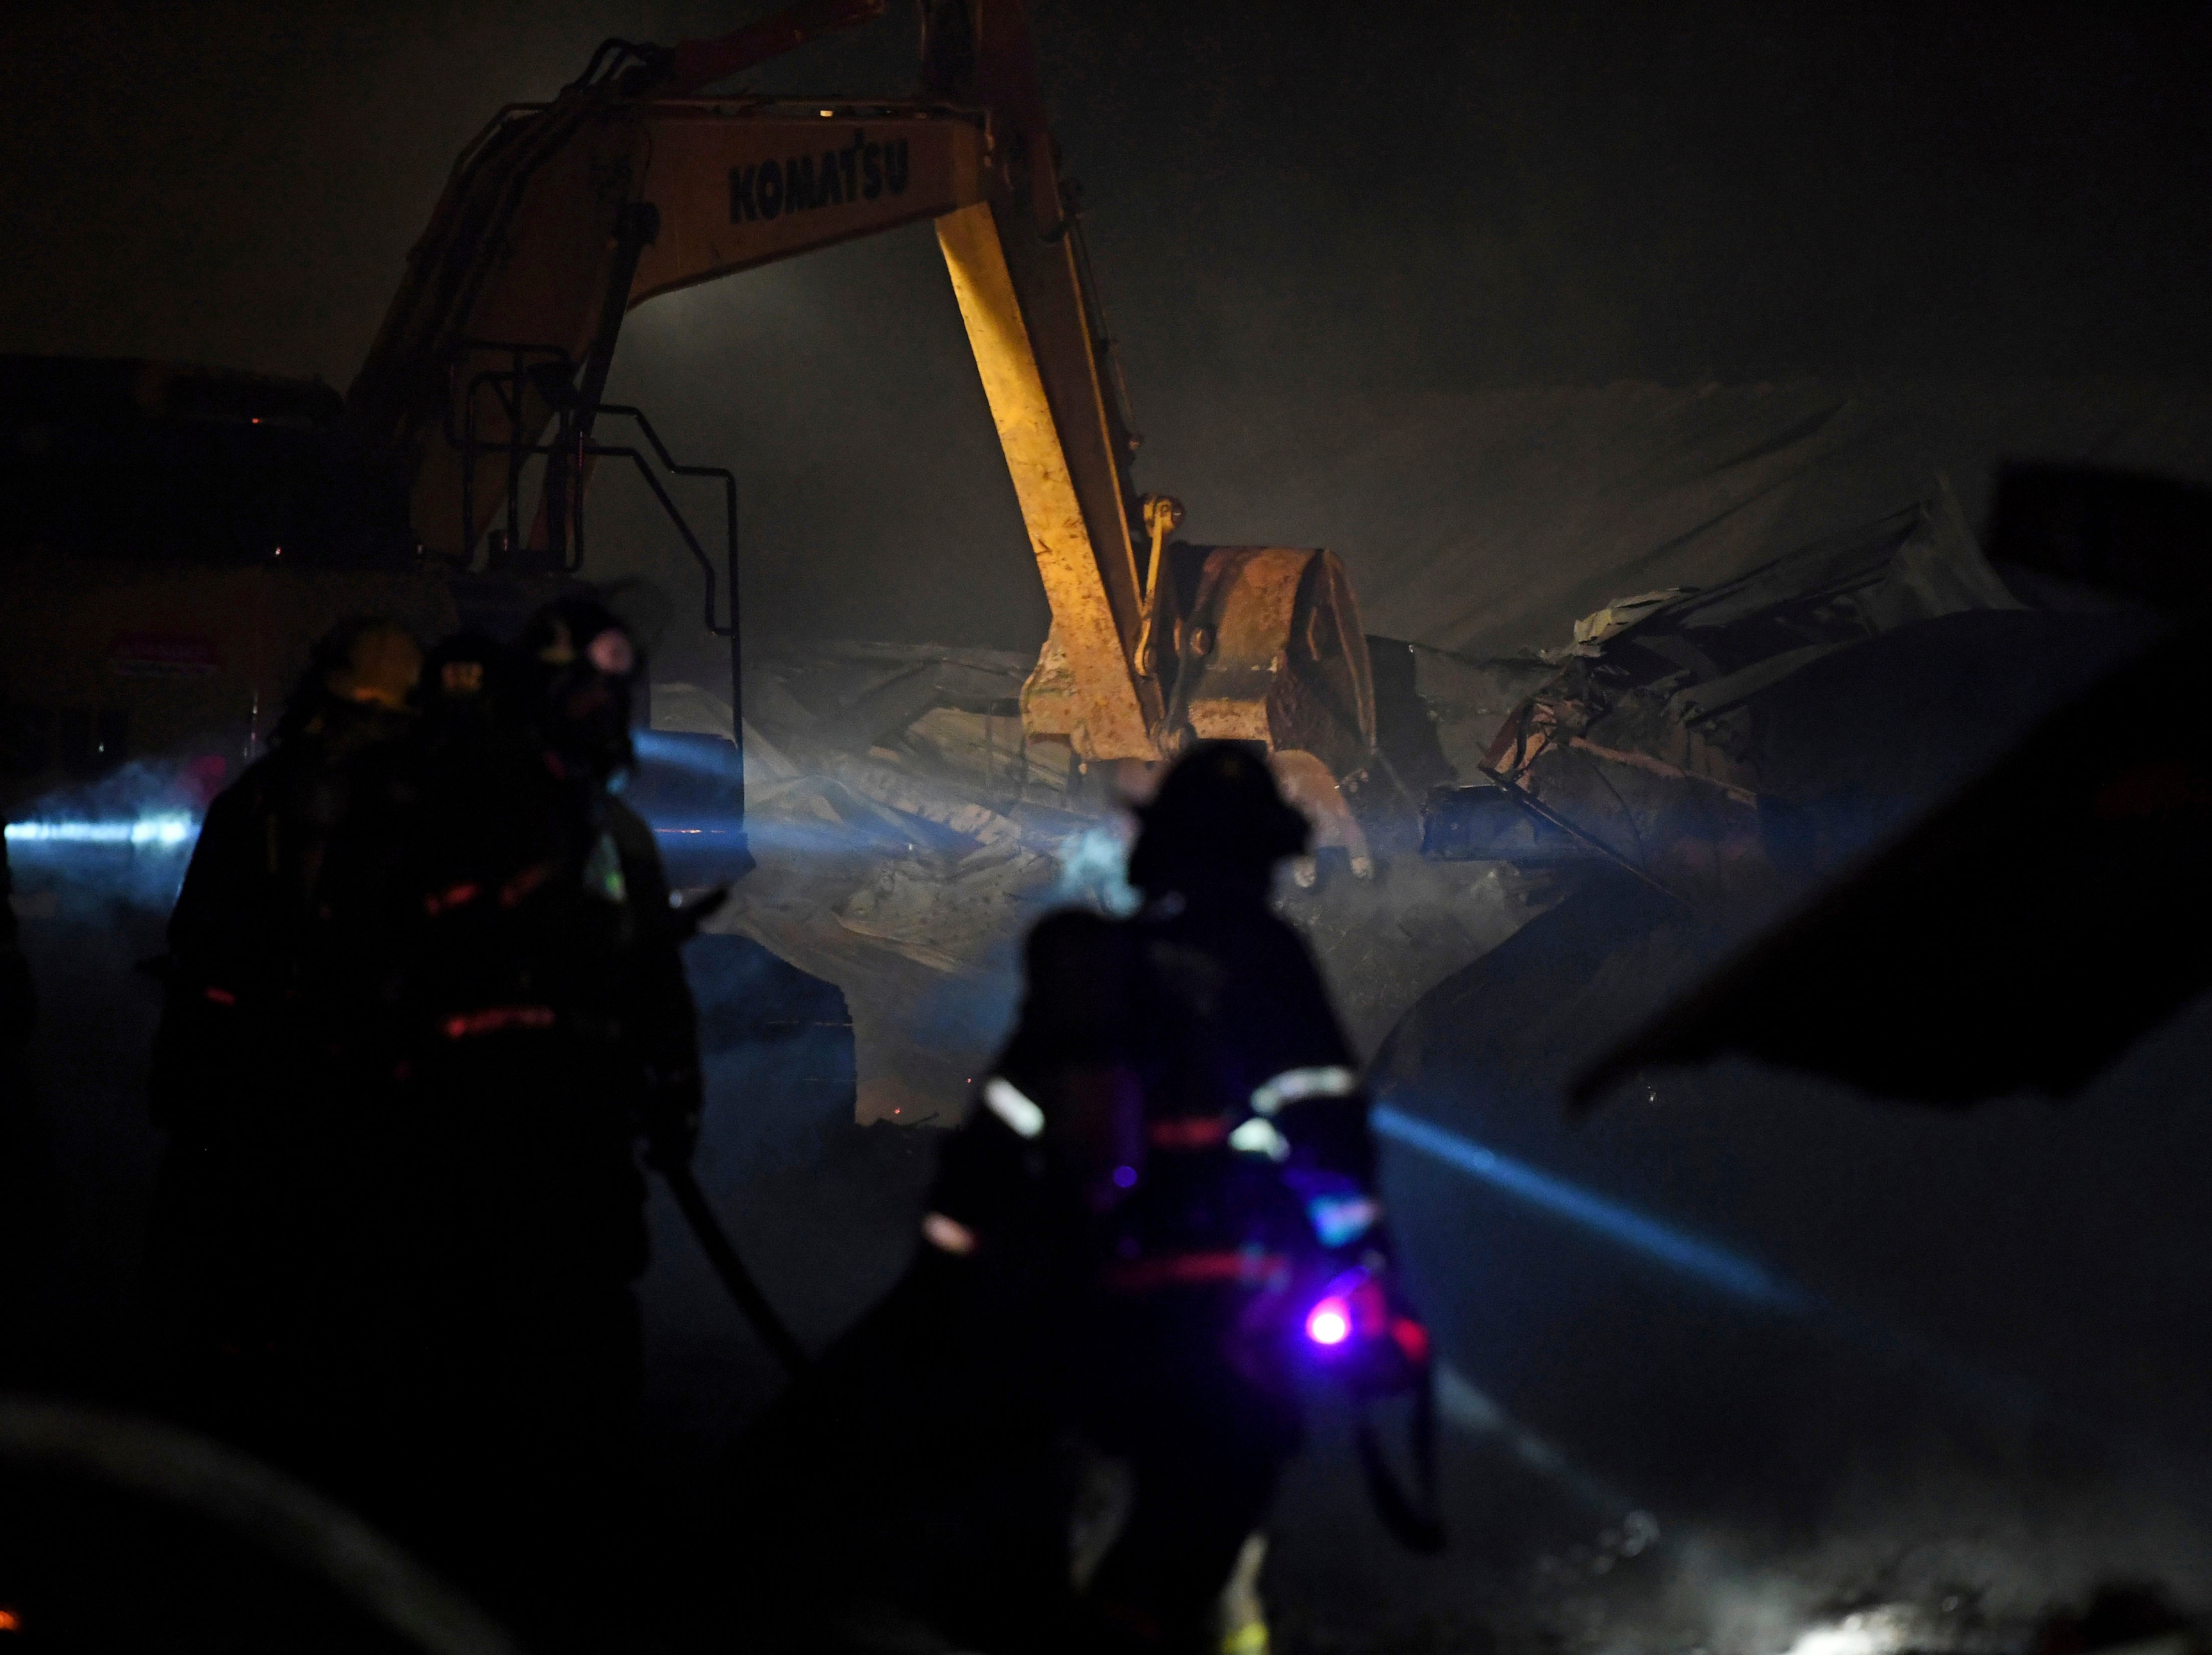 Firefighters use an excavator to find hotspots while extinguishing a fire at American Furniture Manufacturing in Ecru, Miss., Thursday, Feb. 14, 2019. The fire was the third fire at the facility in just over one year and is still under investigation.